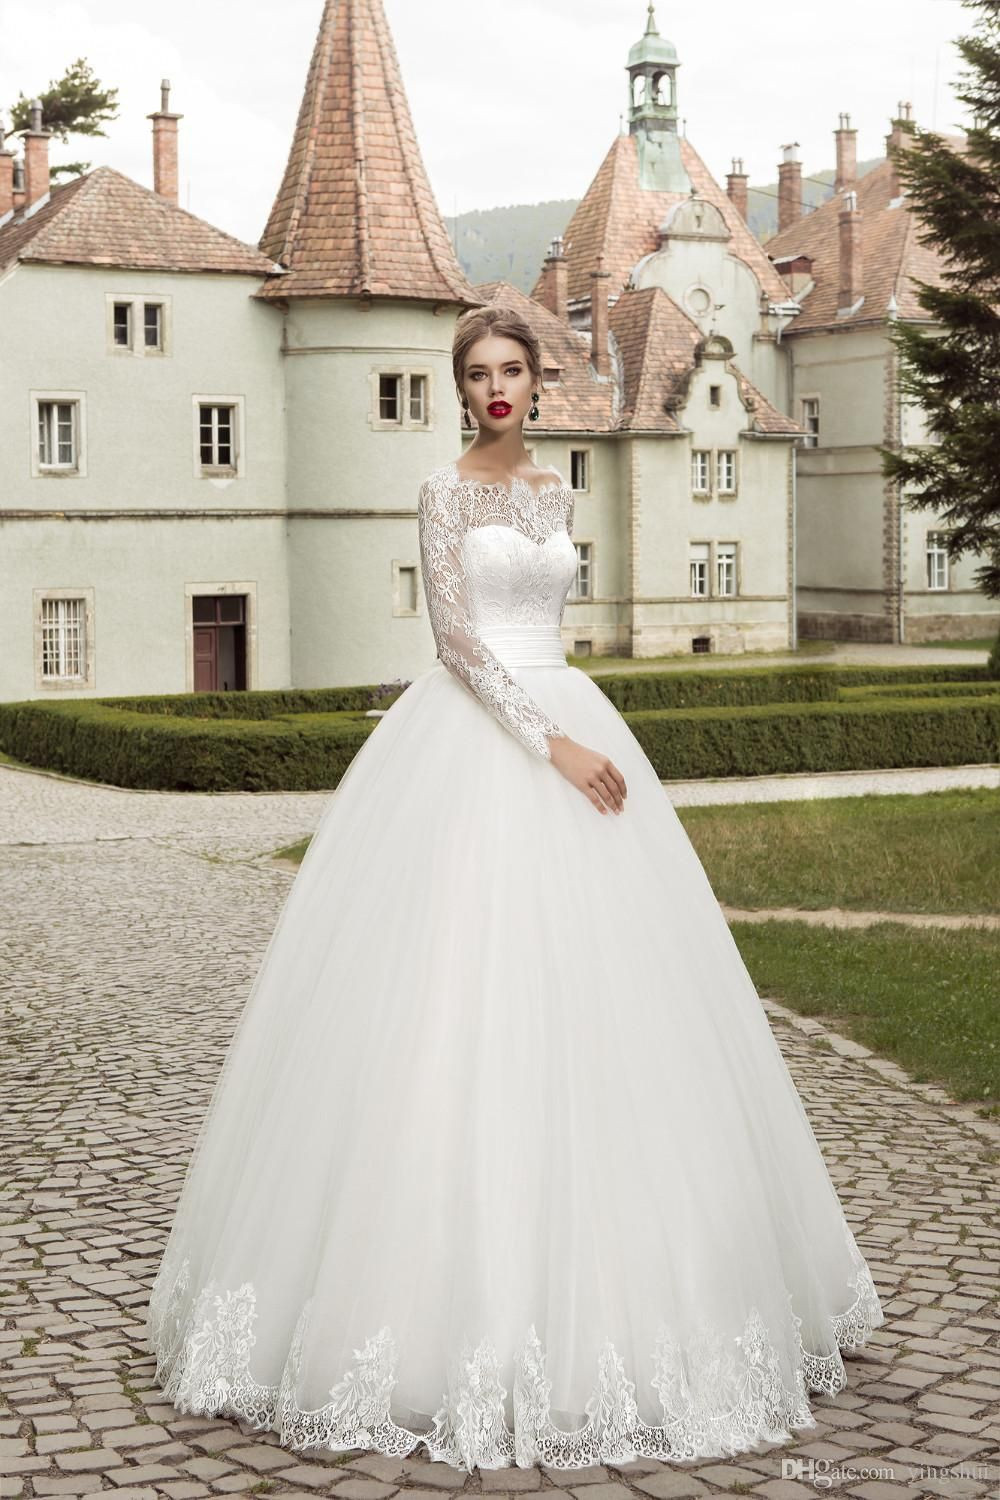 Gorgeous Boat Neck Wedding Dresses with Long Sleeves A-line Tulle Lace Gowns For Bridal Vestidos de Novia